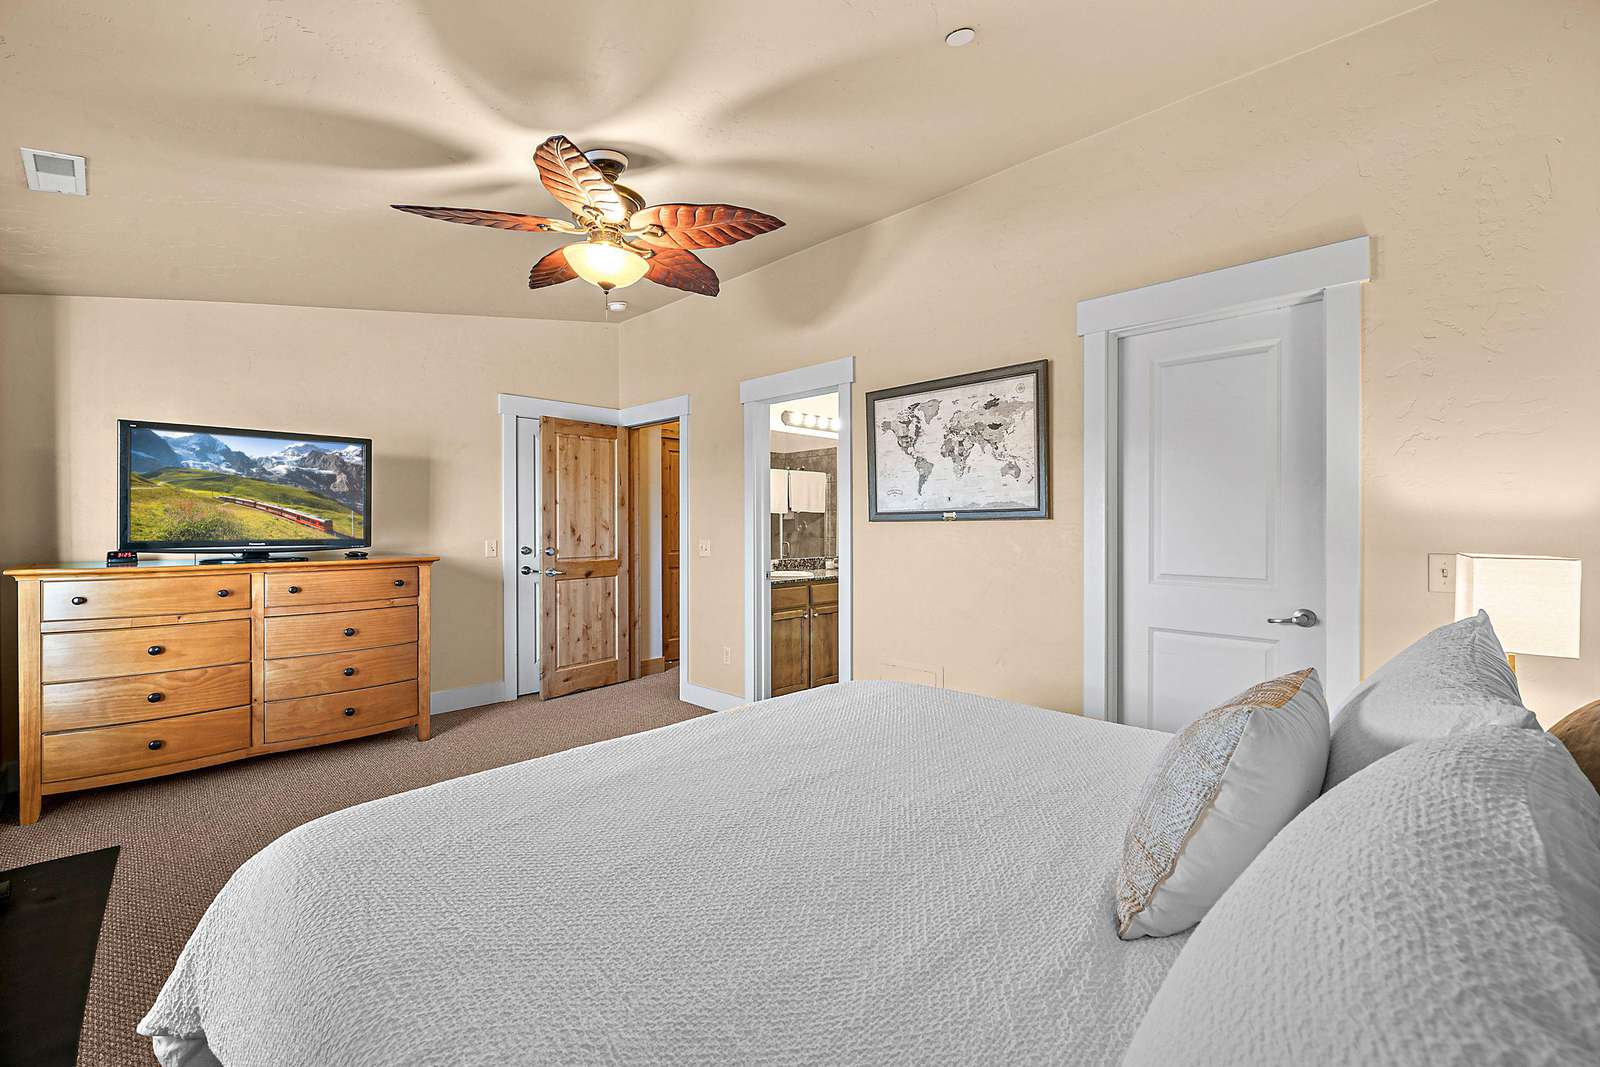 Master bedroom with closet and dresser space